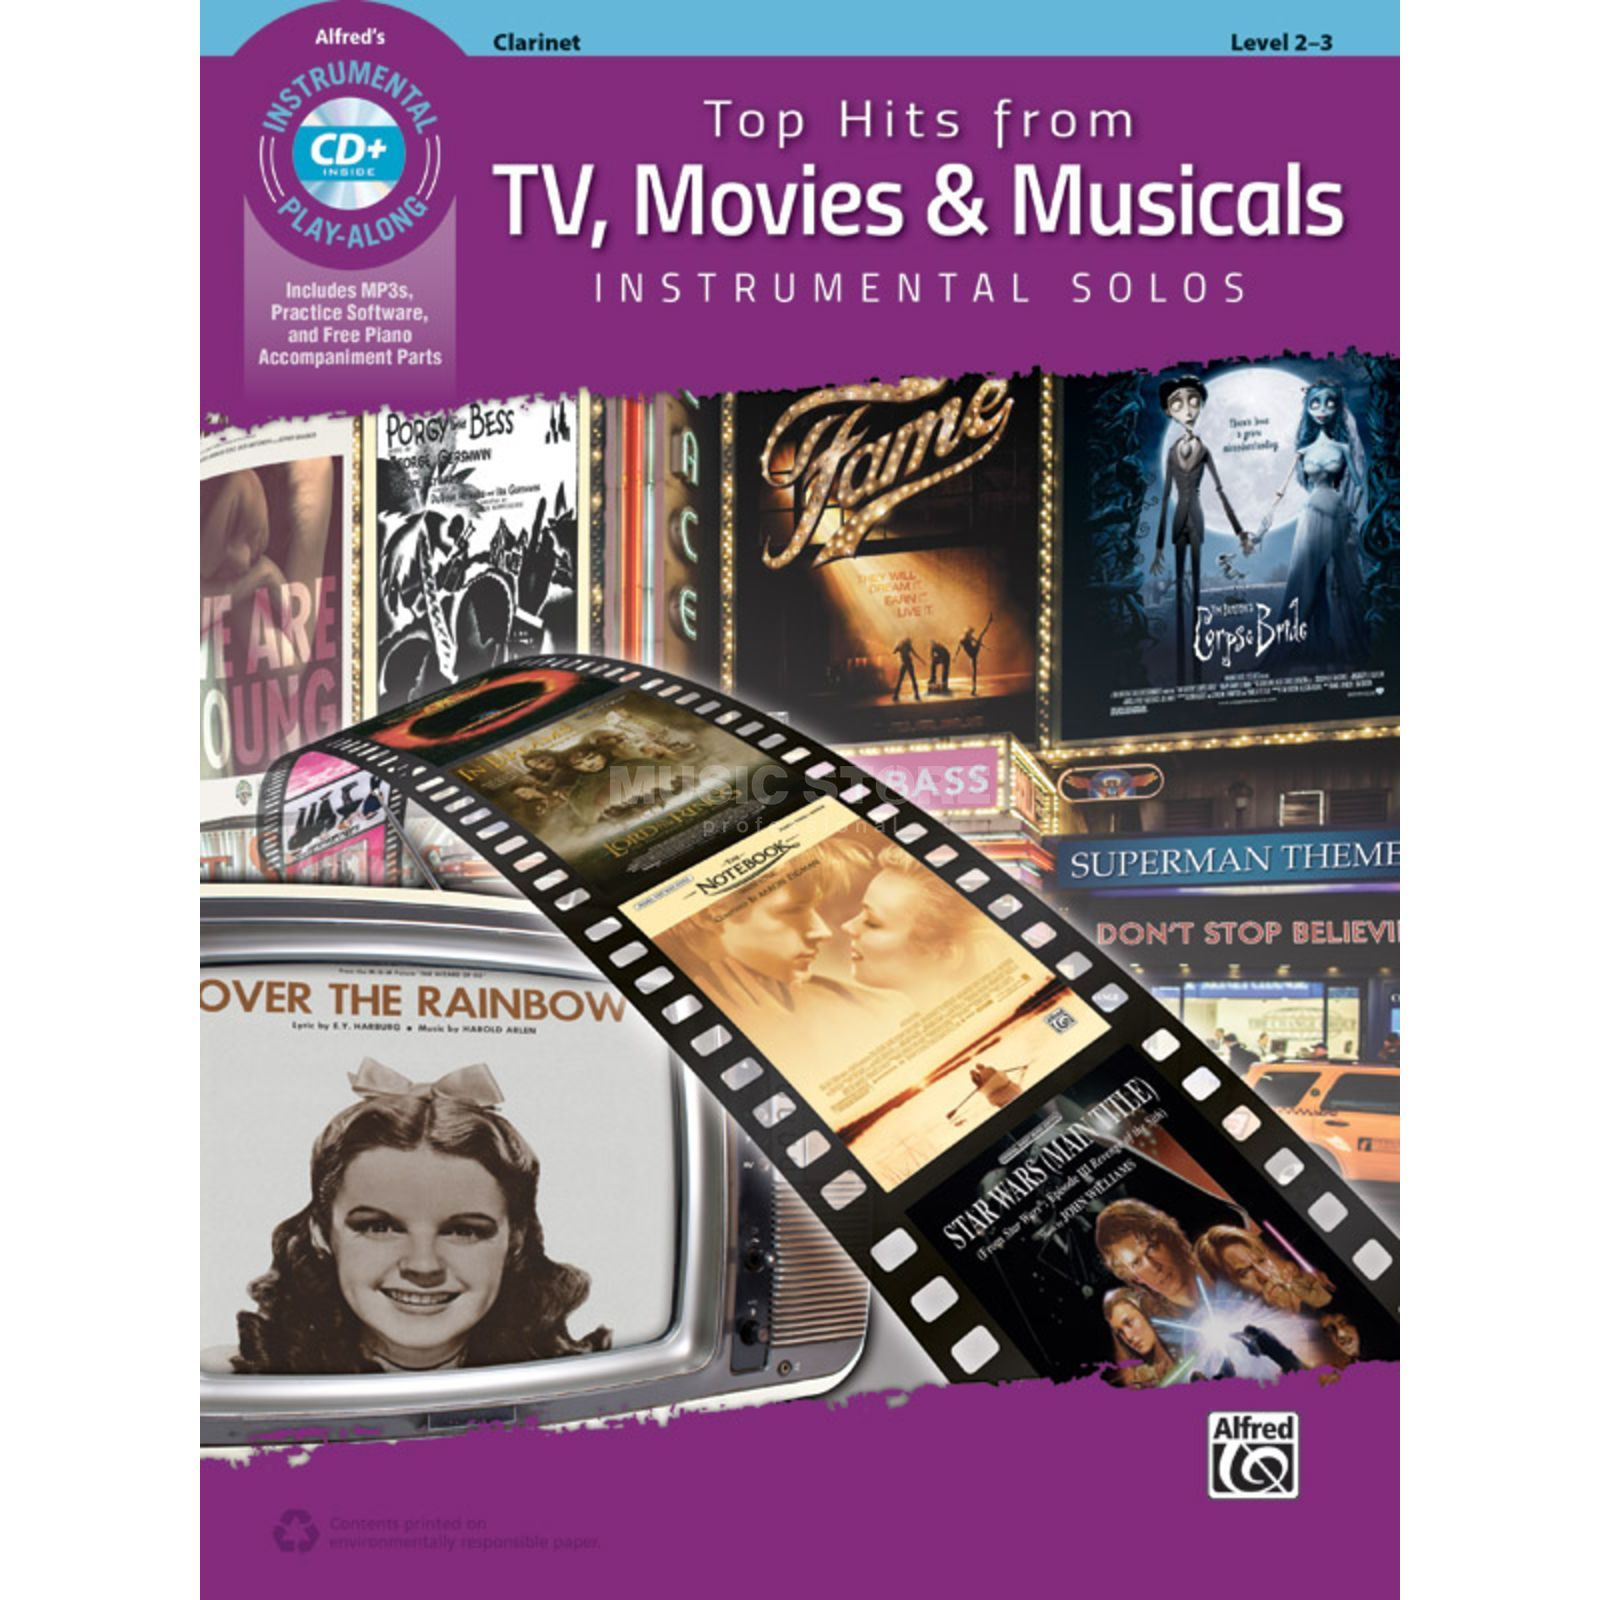 Alfred Music Top Hits from TV, Movies & Musicals – Clarinet Image du produit